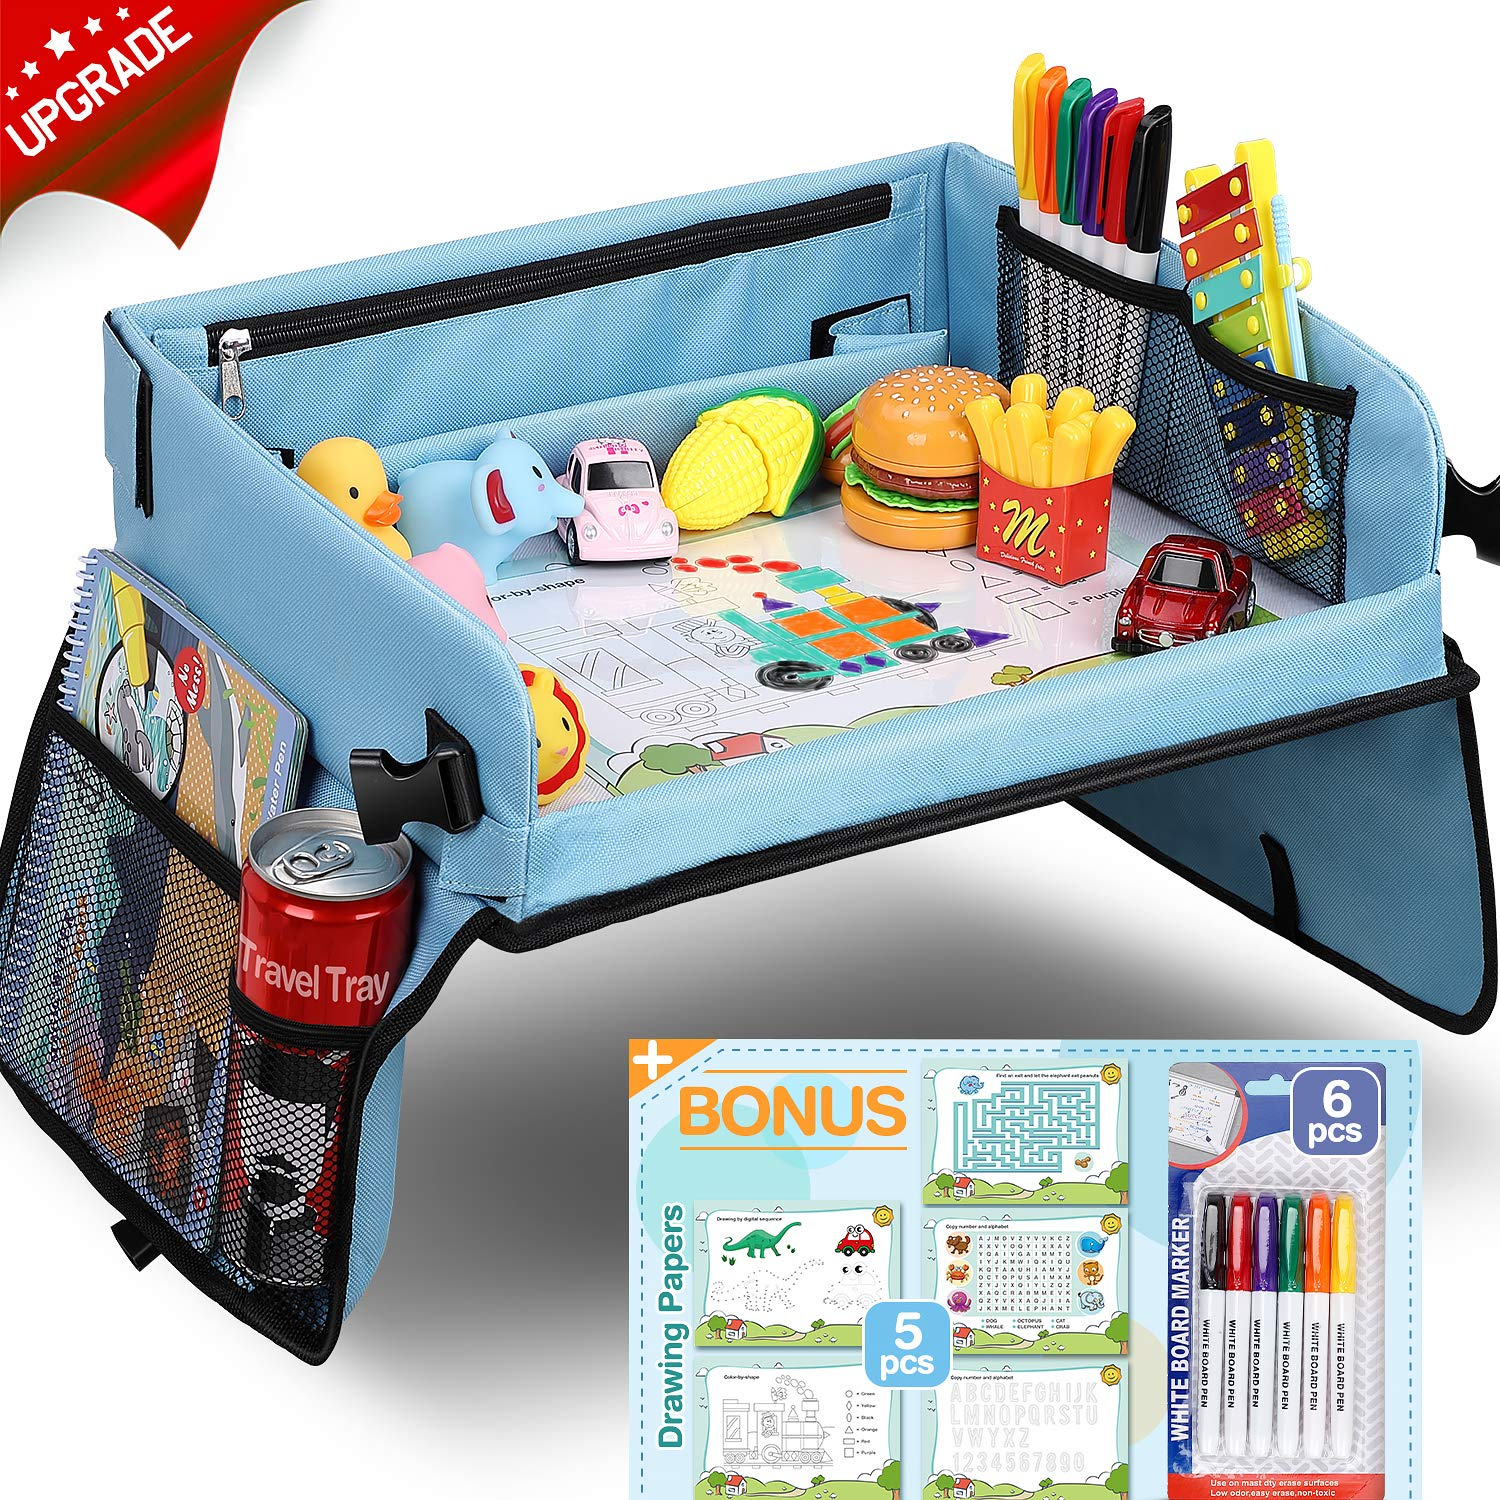 Upgraded Kids Travel Tray with Dry Erase Top Car Seat Travel Tray with 16 Organizer Pockets for Car Stroller Plane Bonus 5 Educational Drawing by tomser